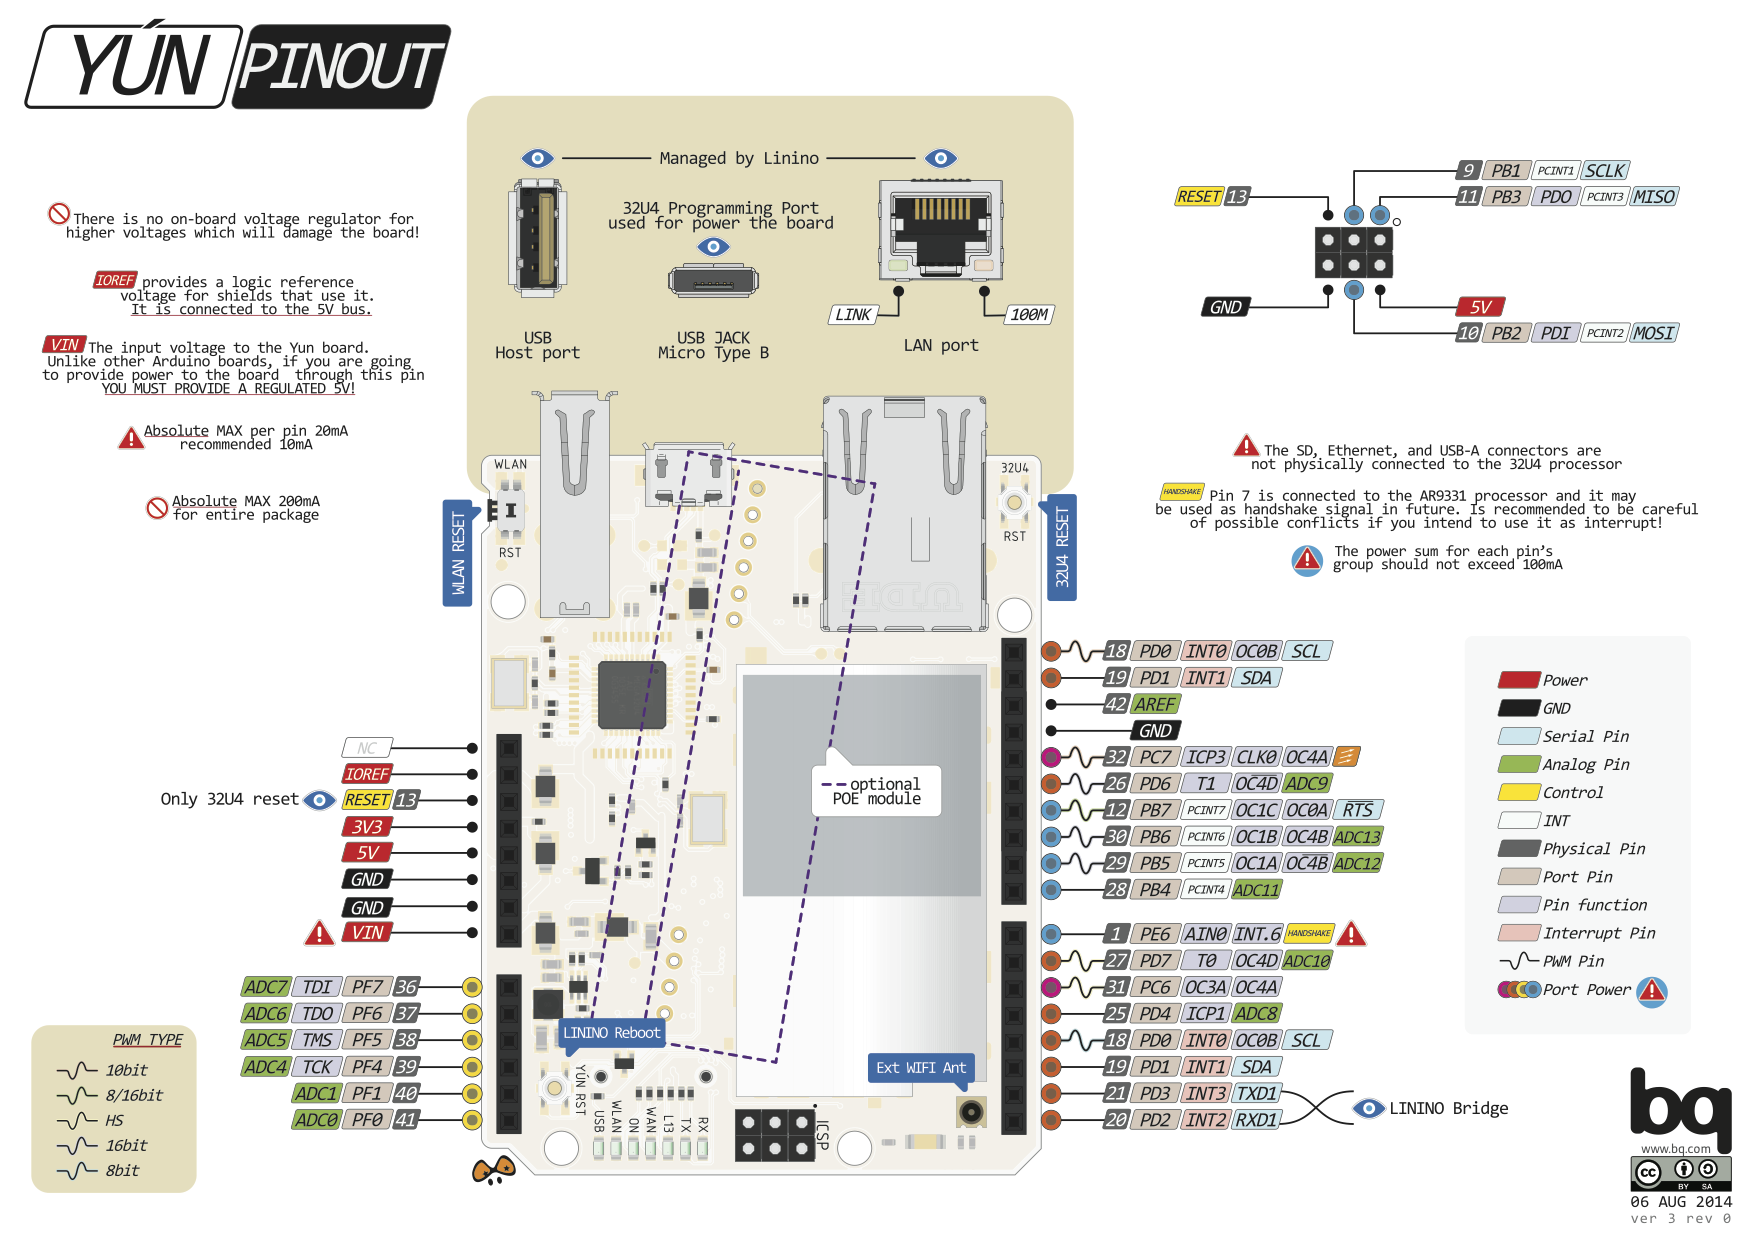 Usb Powered Pic Programmer Circuit Diagram Pin By Zeljko Penezic On Arduino In 2019 Pinterest Technology Electronics Projects Circuits Raspberry Computers Tech